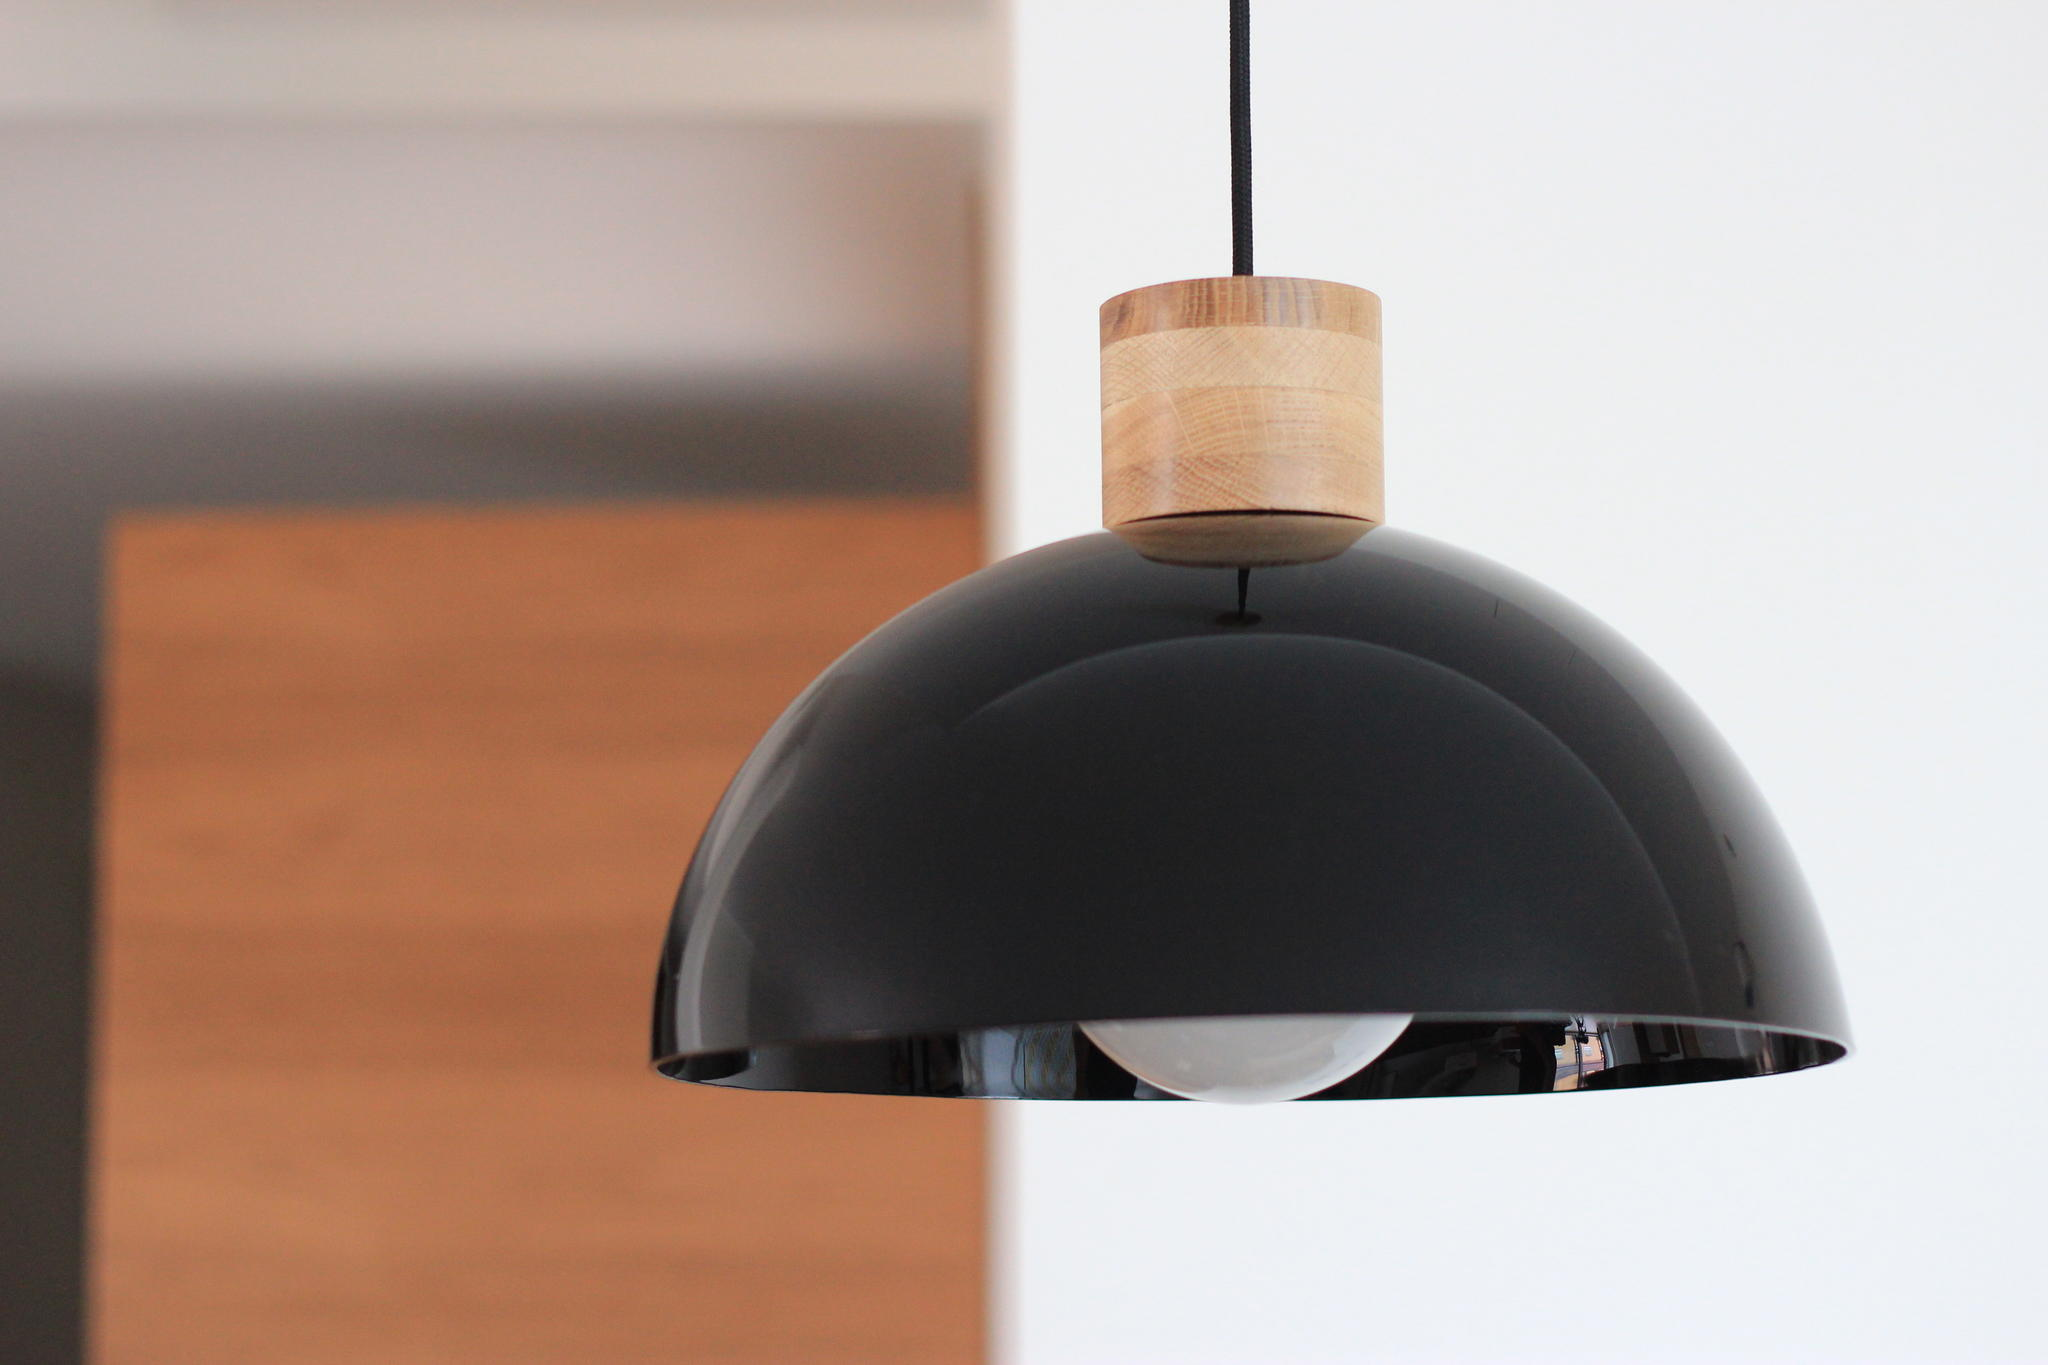 cb2527780cb Materials: oiled laminated oak wood and plastic, textile cord 2 m.  Dimensions: lamp H240mm x D350mm, ceiling cup H55mm x D90mm. Socket: E27.